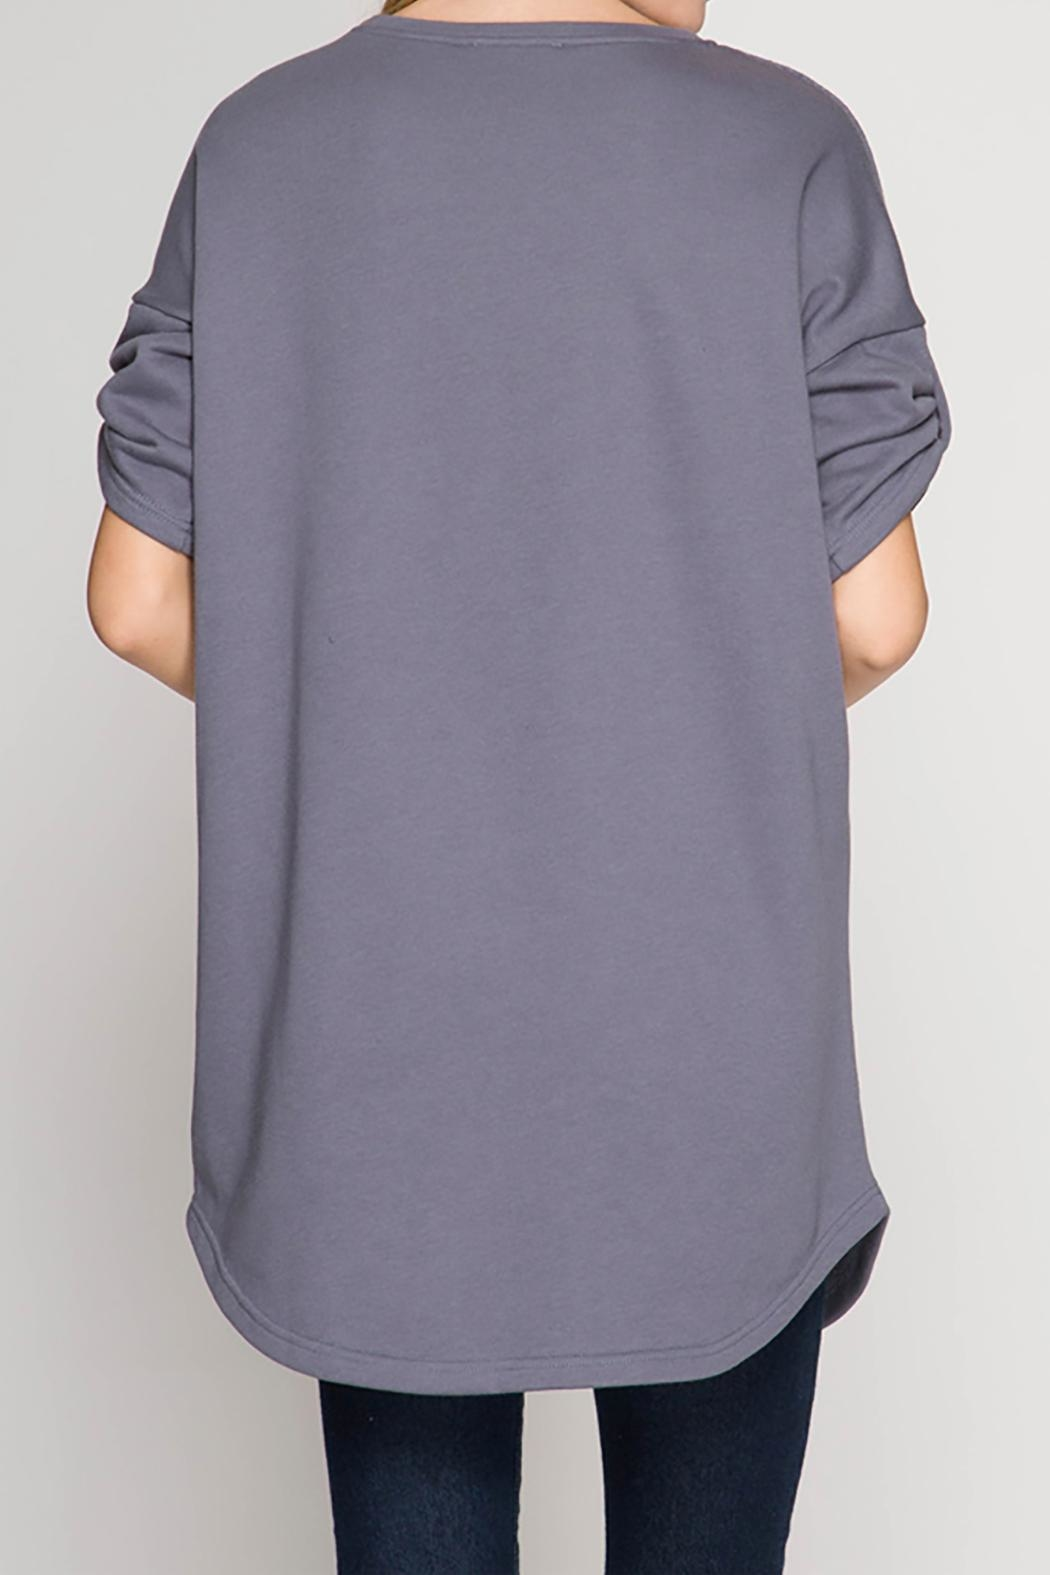 She + Sky Grey Terry Top - Front Full Image